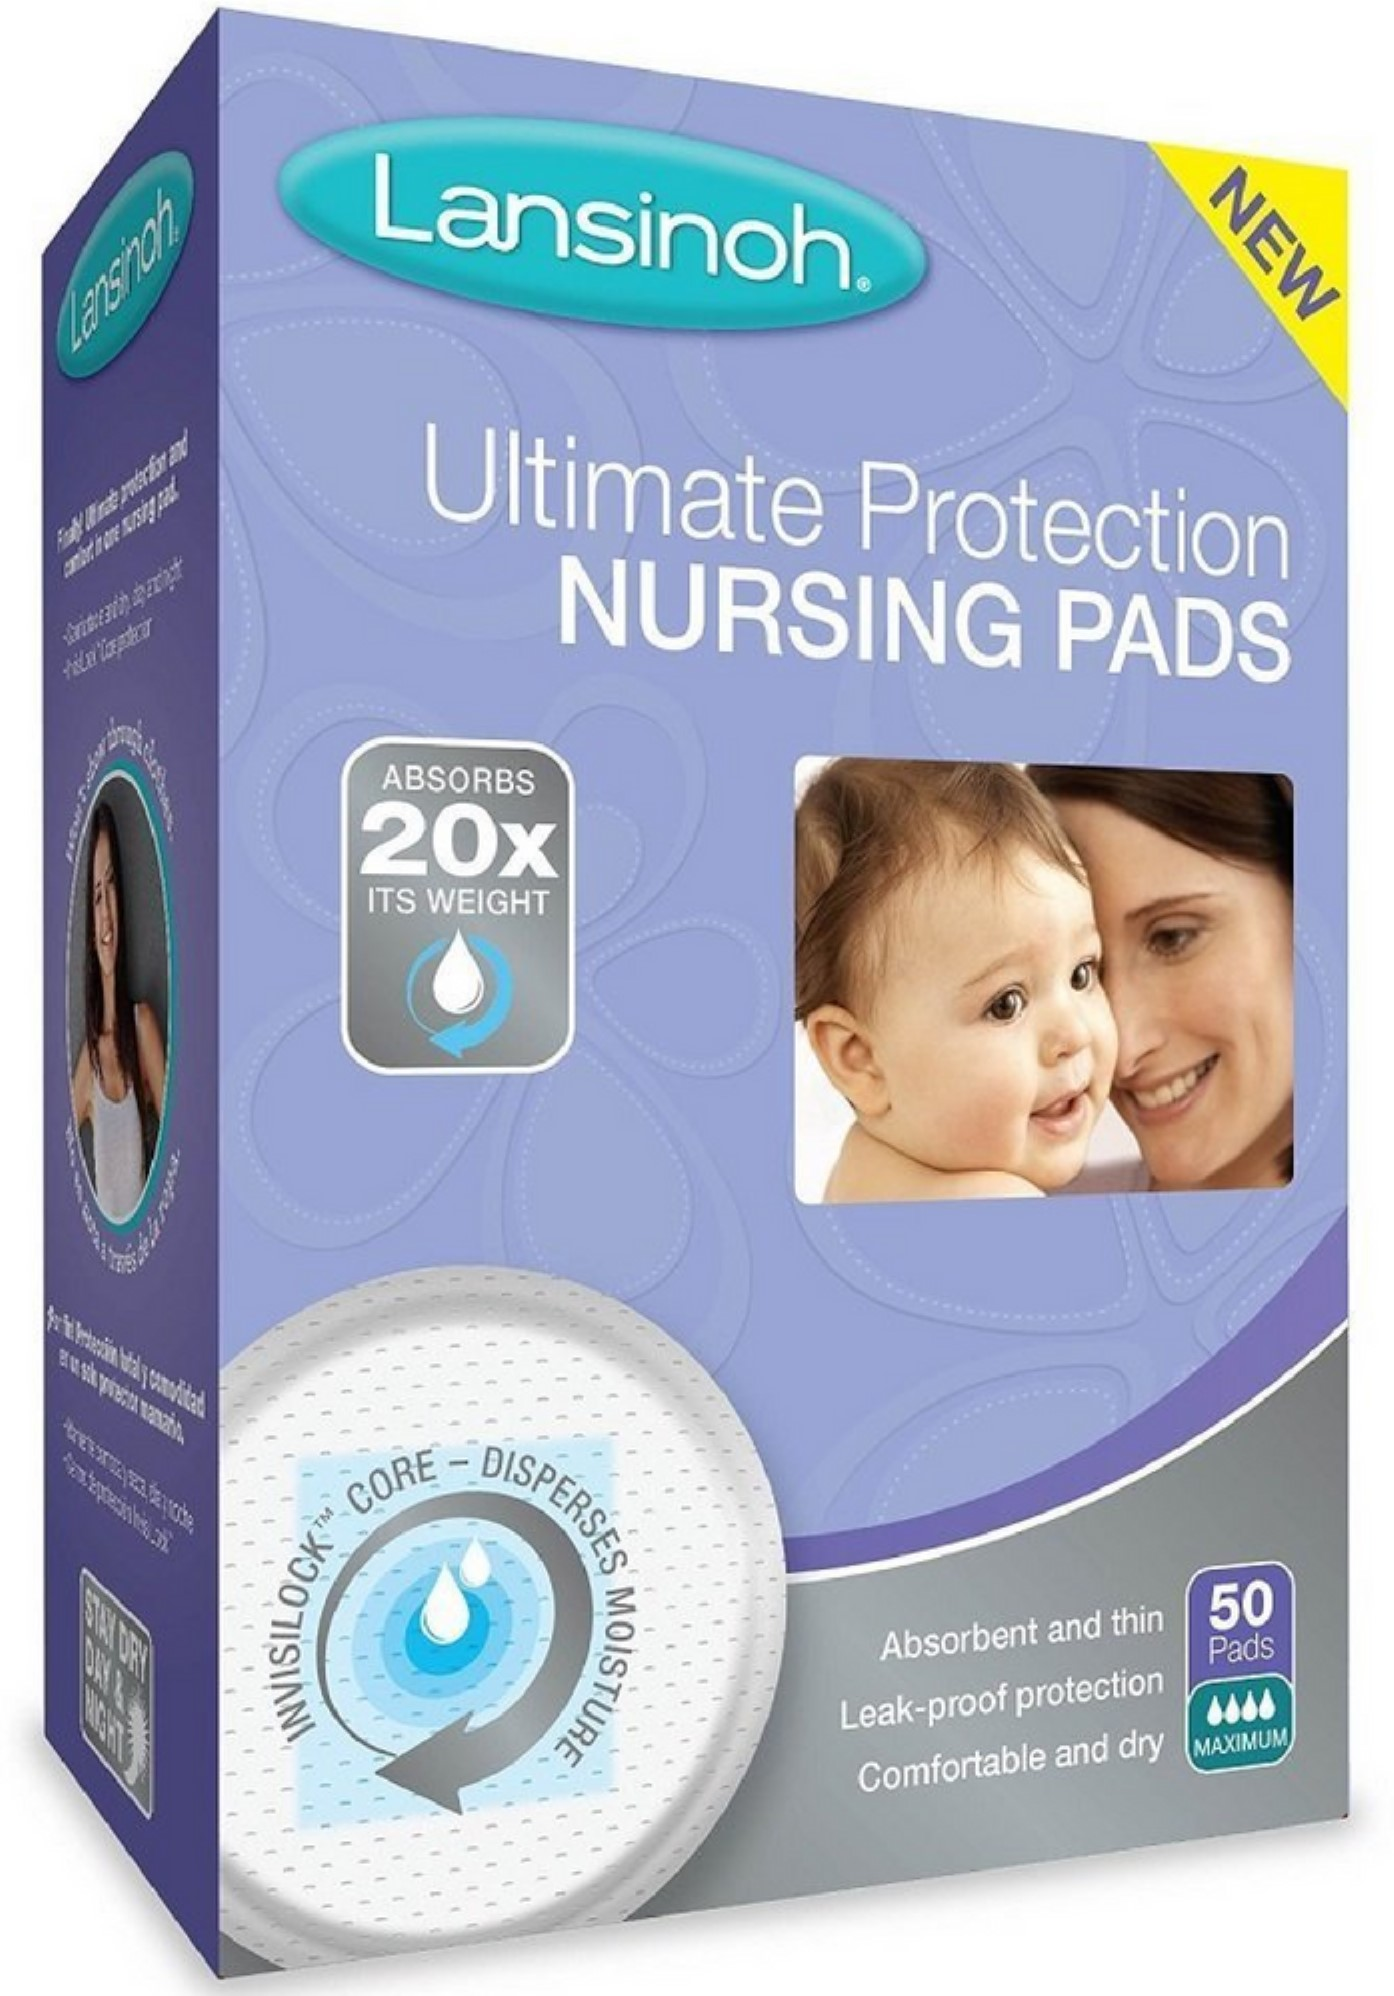 Lansinoh Ultimate Protection Nursing Pads 50 ea by Lansinoh